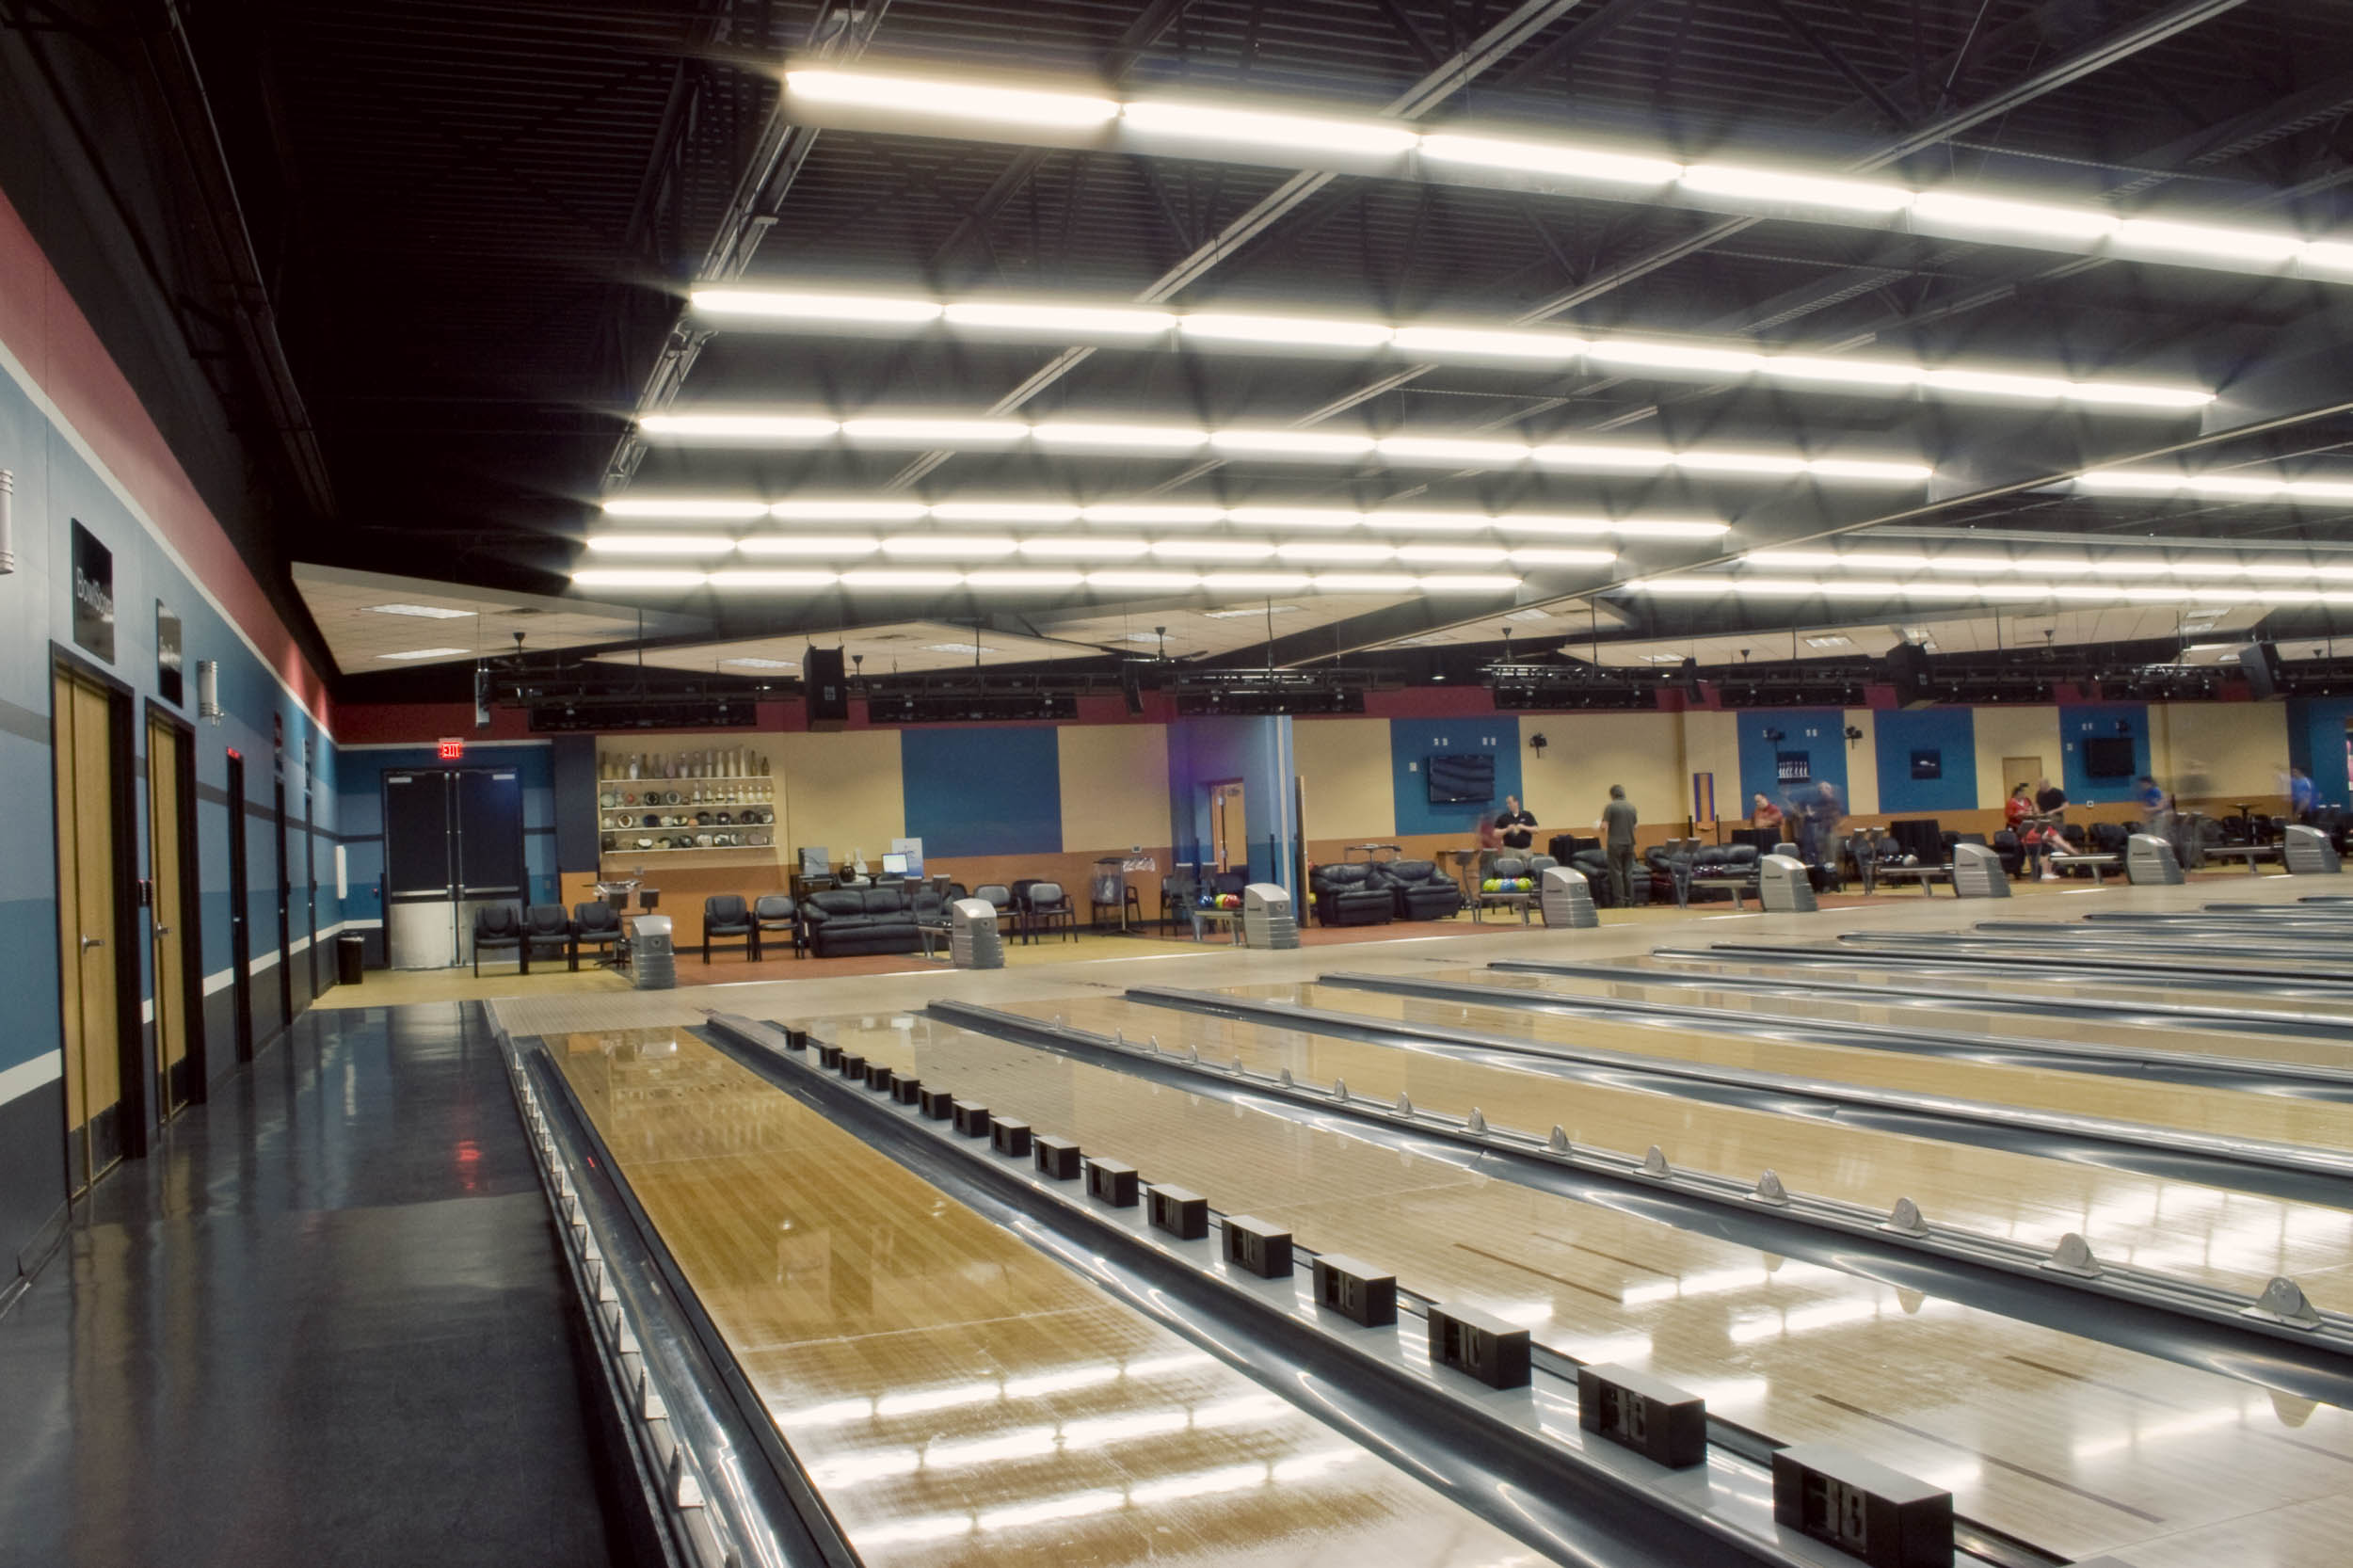 USBC Bowling Alley Angle View